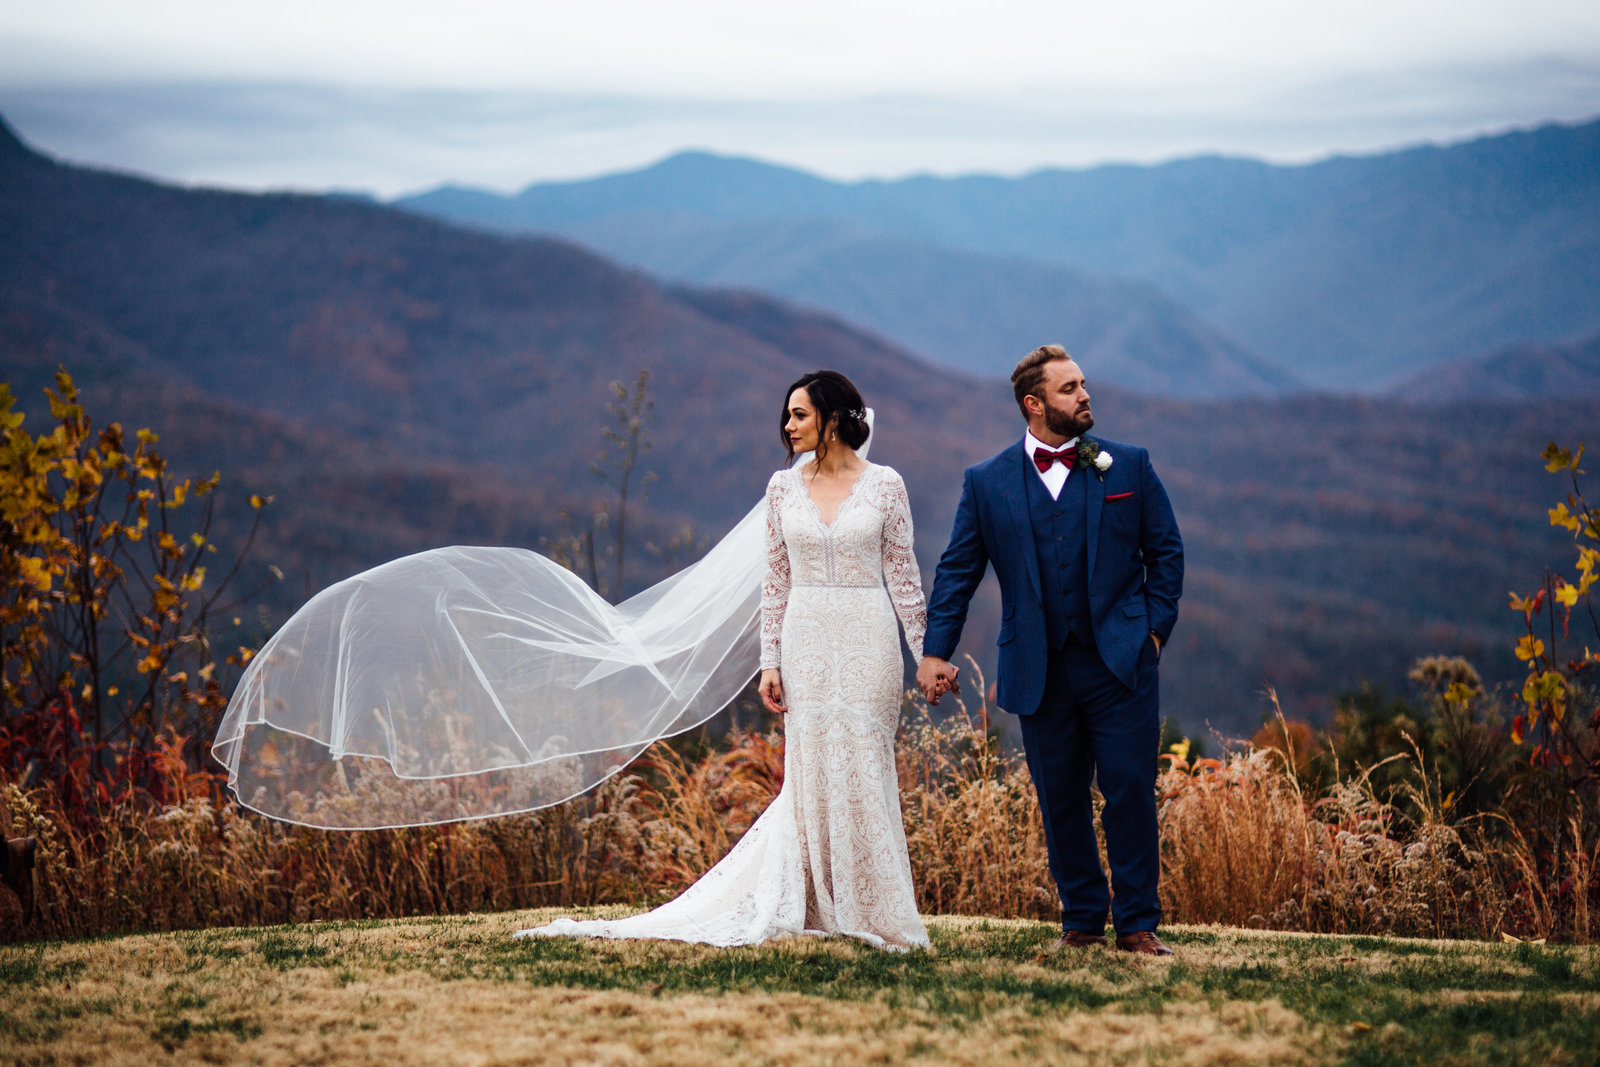 SaraLane-And-Stevie-Wedding-Photography-Maria-JC-Gatlinburg-TN-LR-331